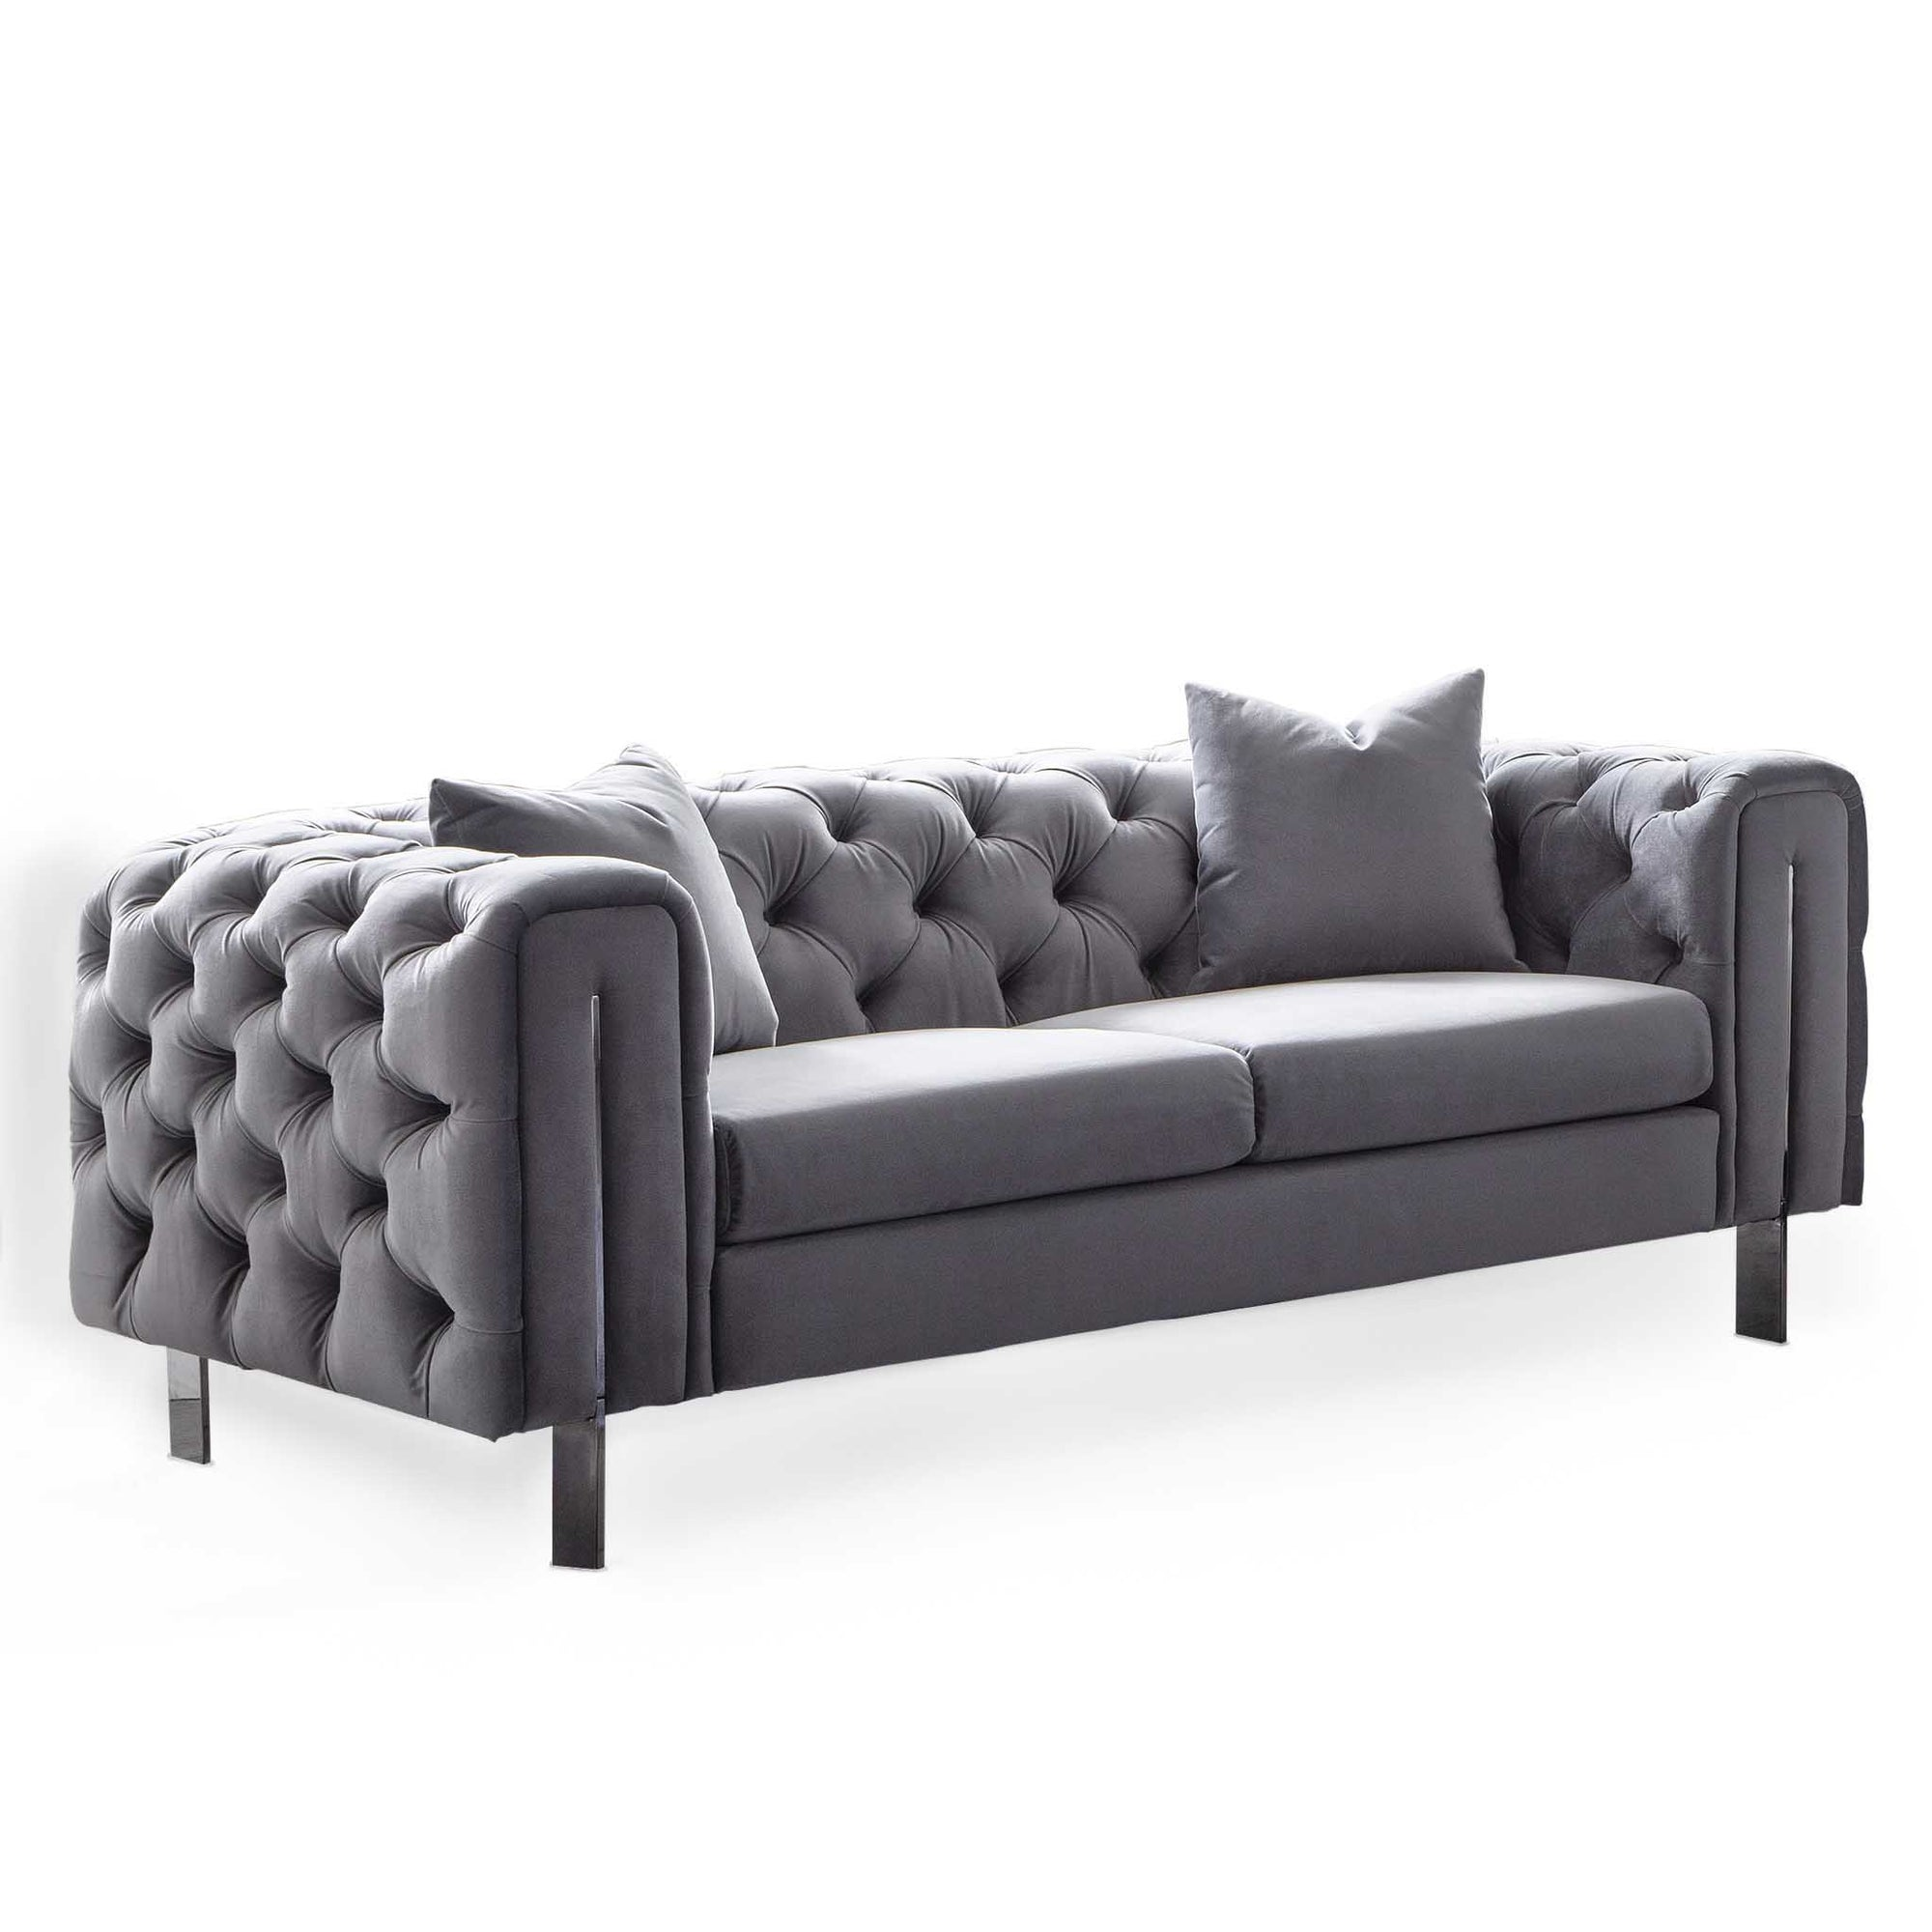 Ritz Grey Velvet 3 Seater Chesterfield Couch by Roseland Furniture